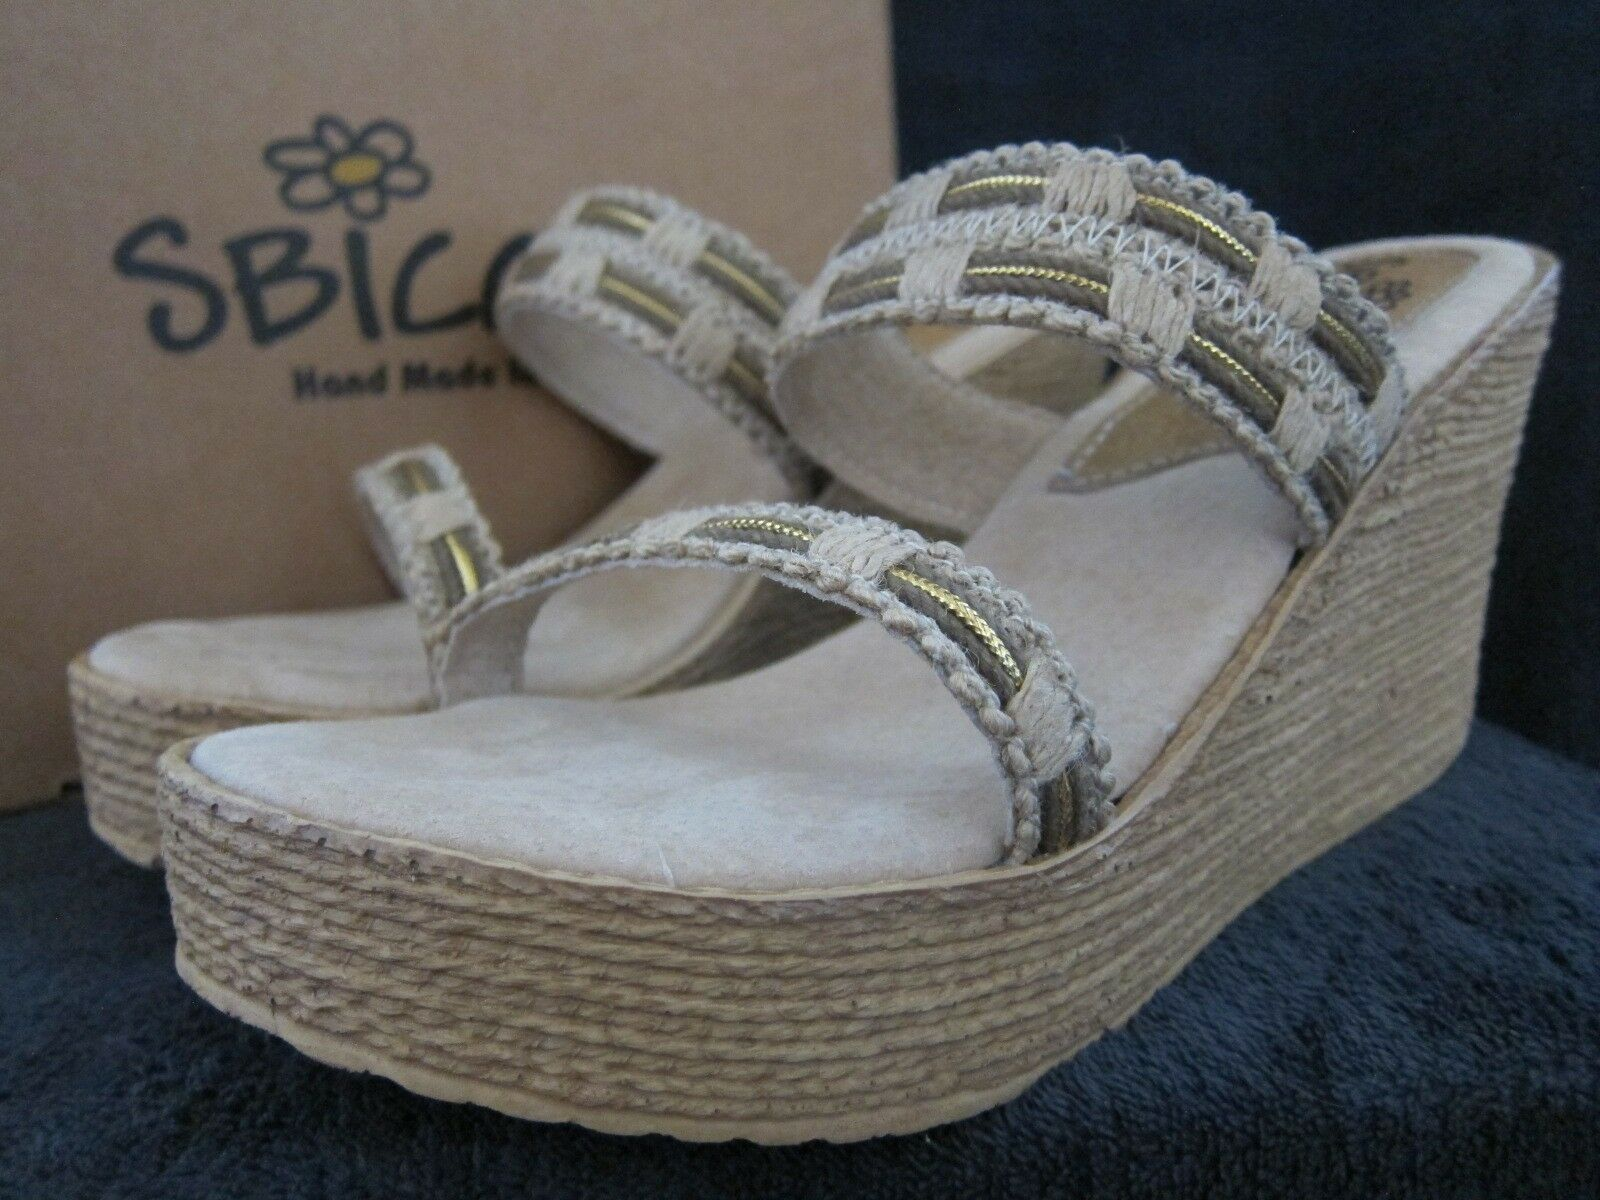 SBICCA Westridge Taupe Womens Wedge Sandals Heels shoes Size US 9 M NWB